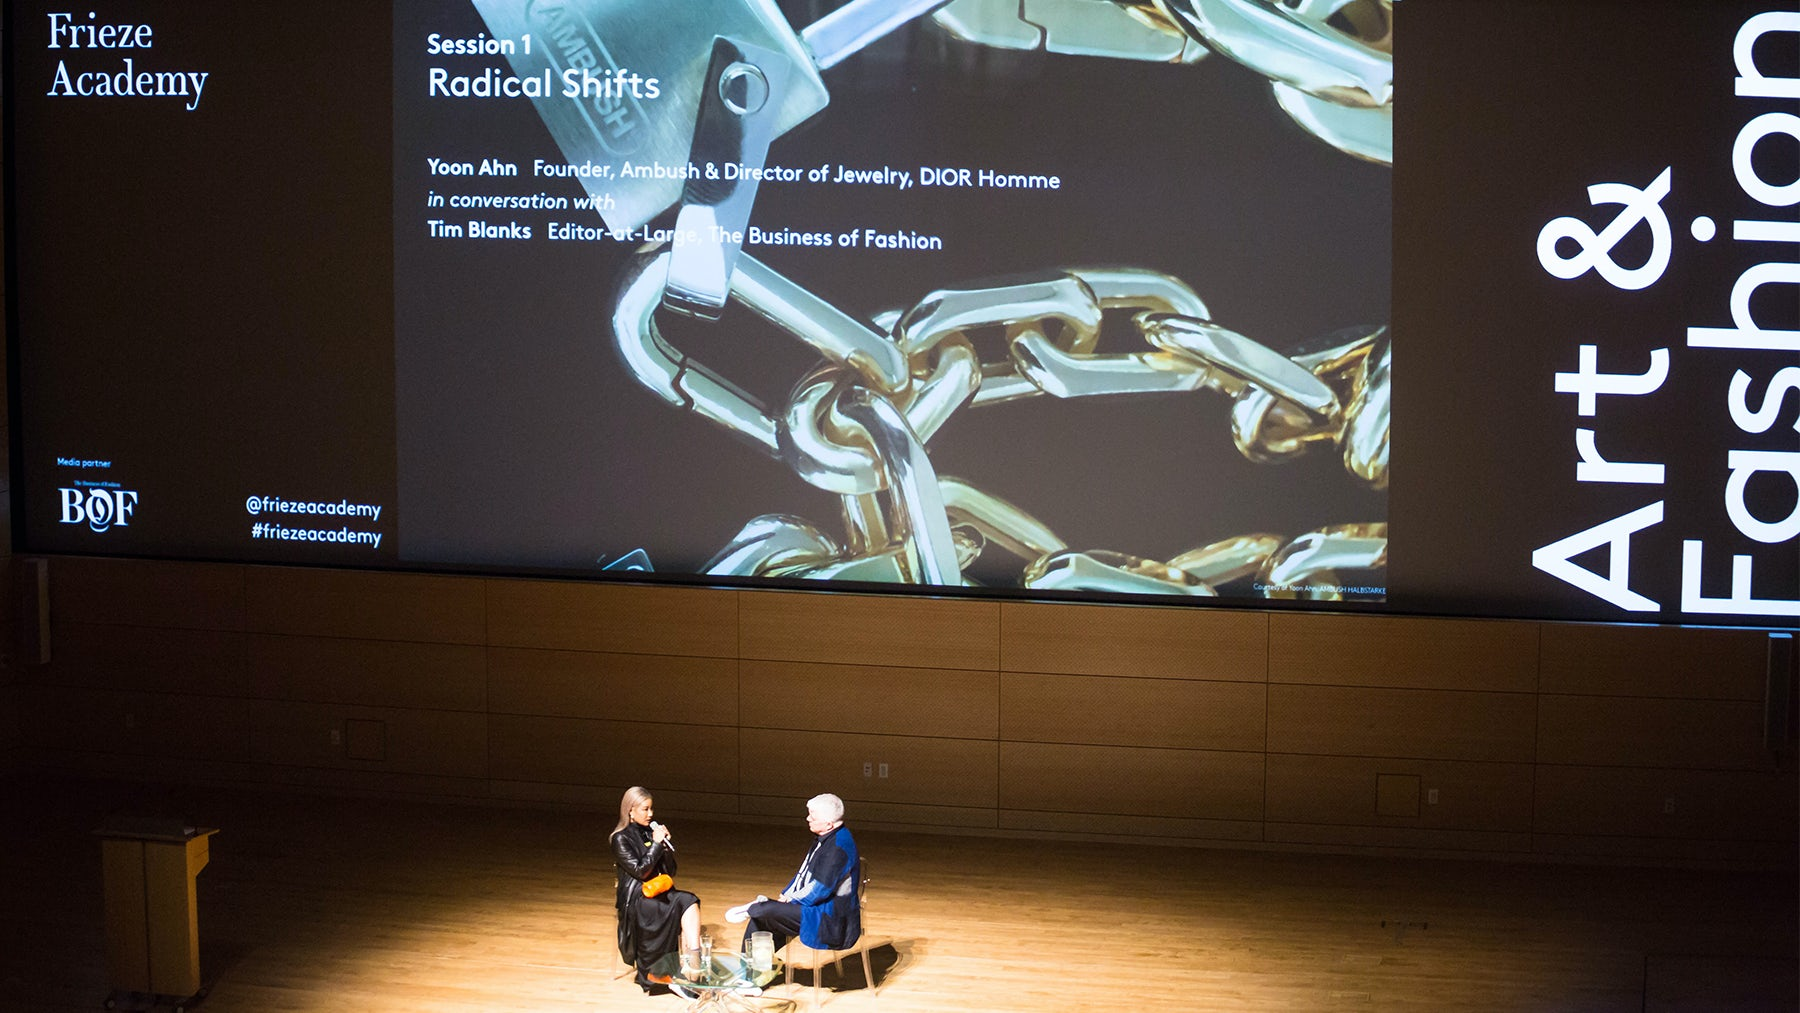 Tim Blanks and Yoon Ahn talk at Frieze Academy | Source: Courtesy